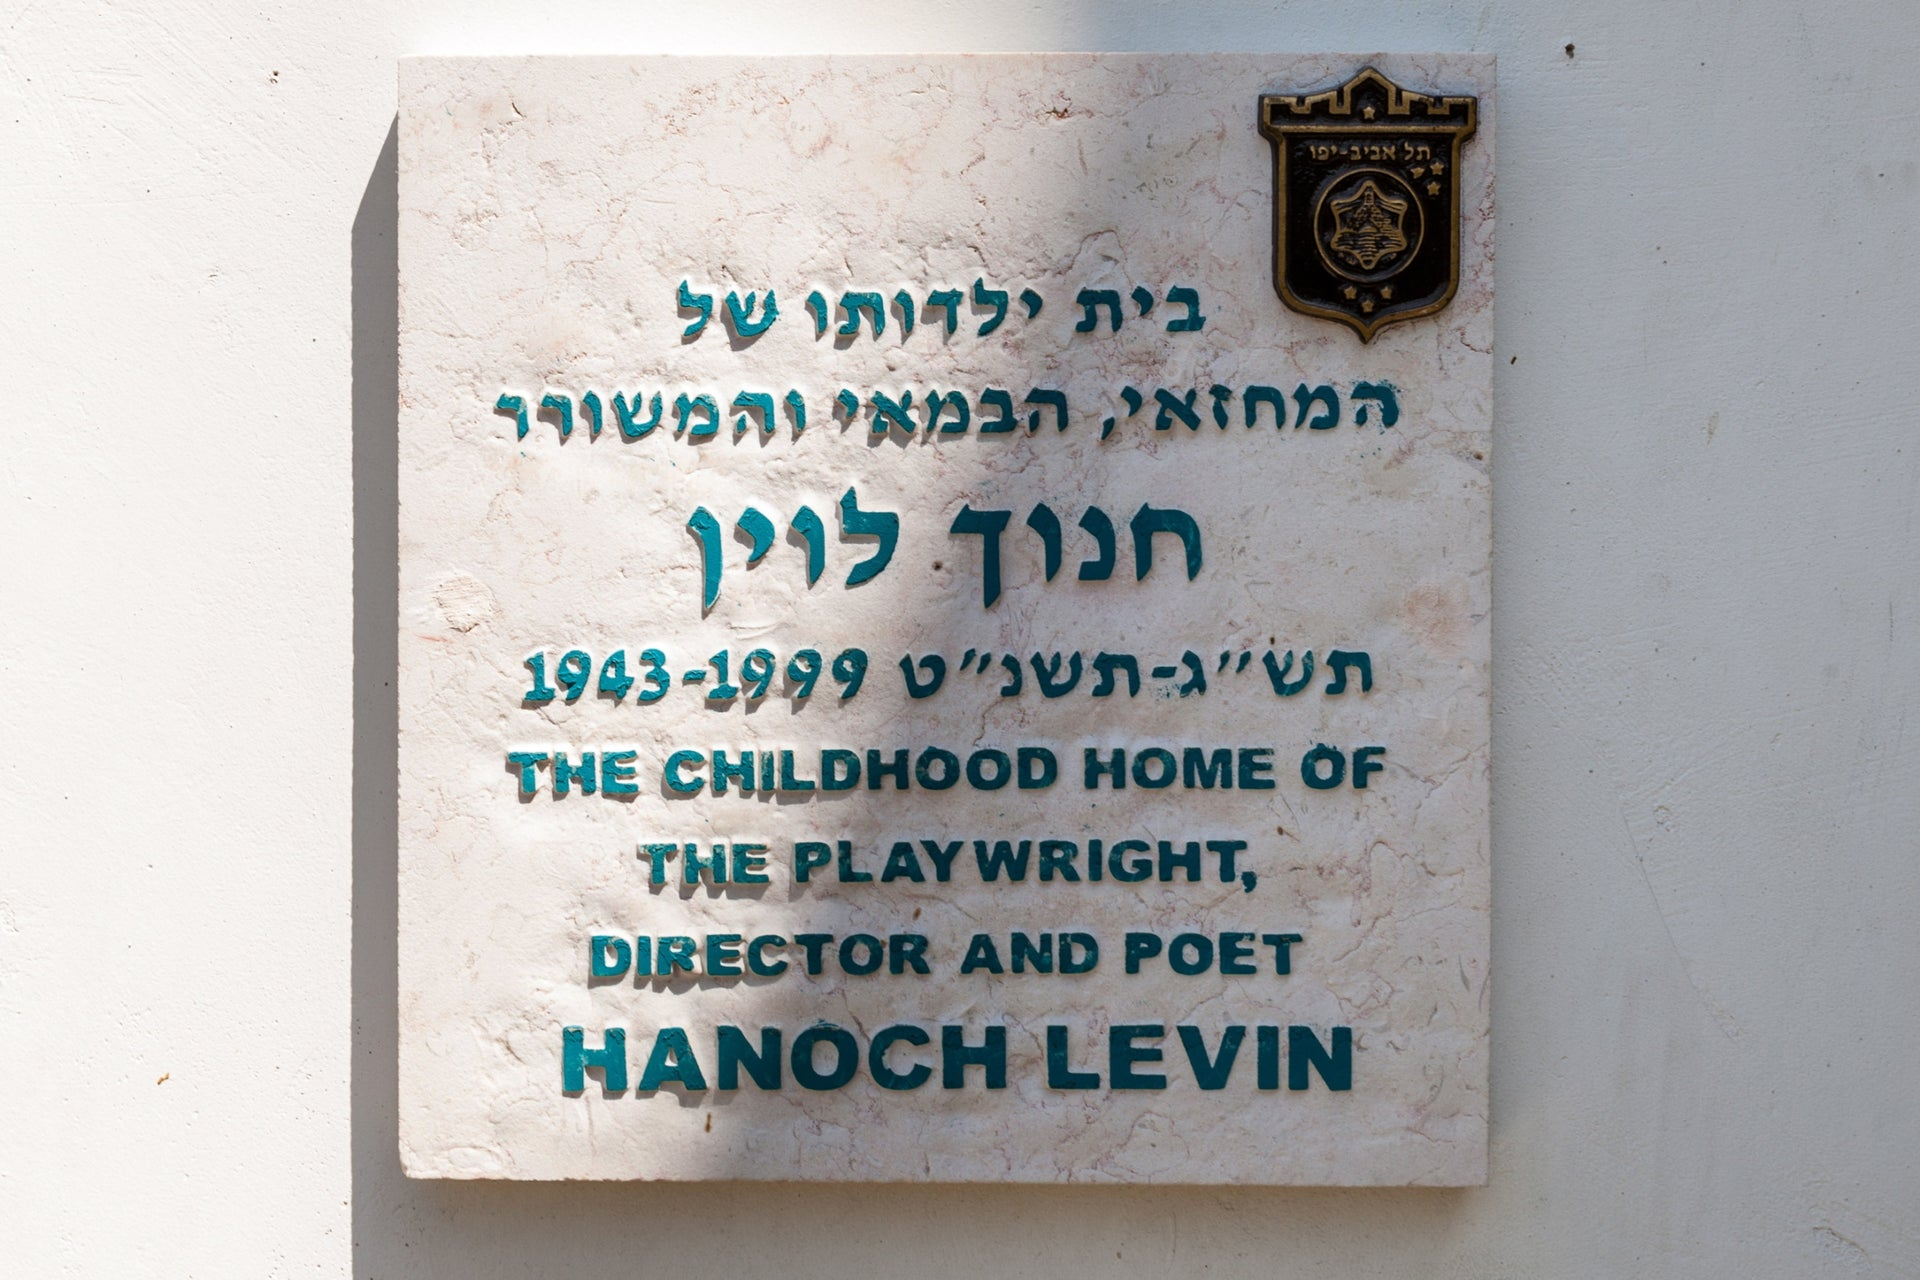 A memorial plaque on the childhood home of Hanoch Levin in Tel Aviv.